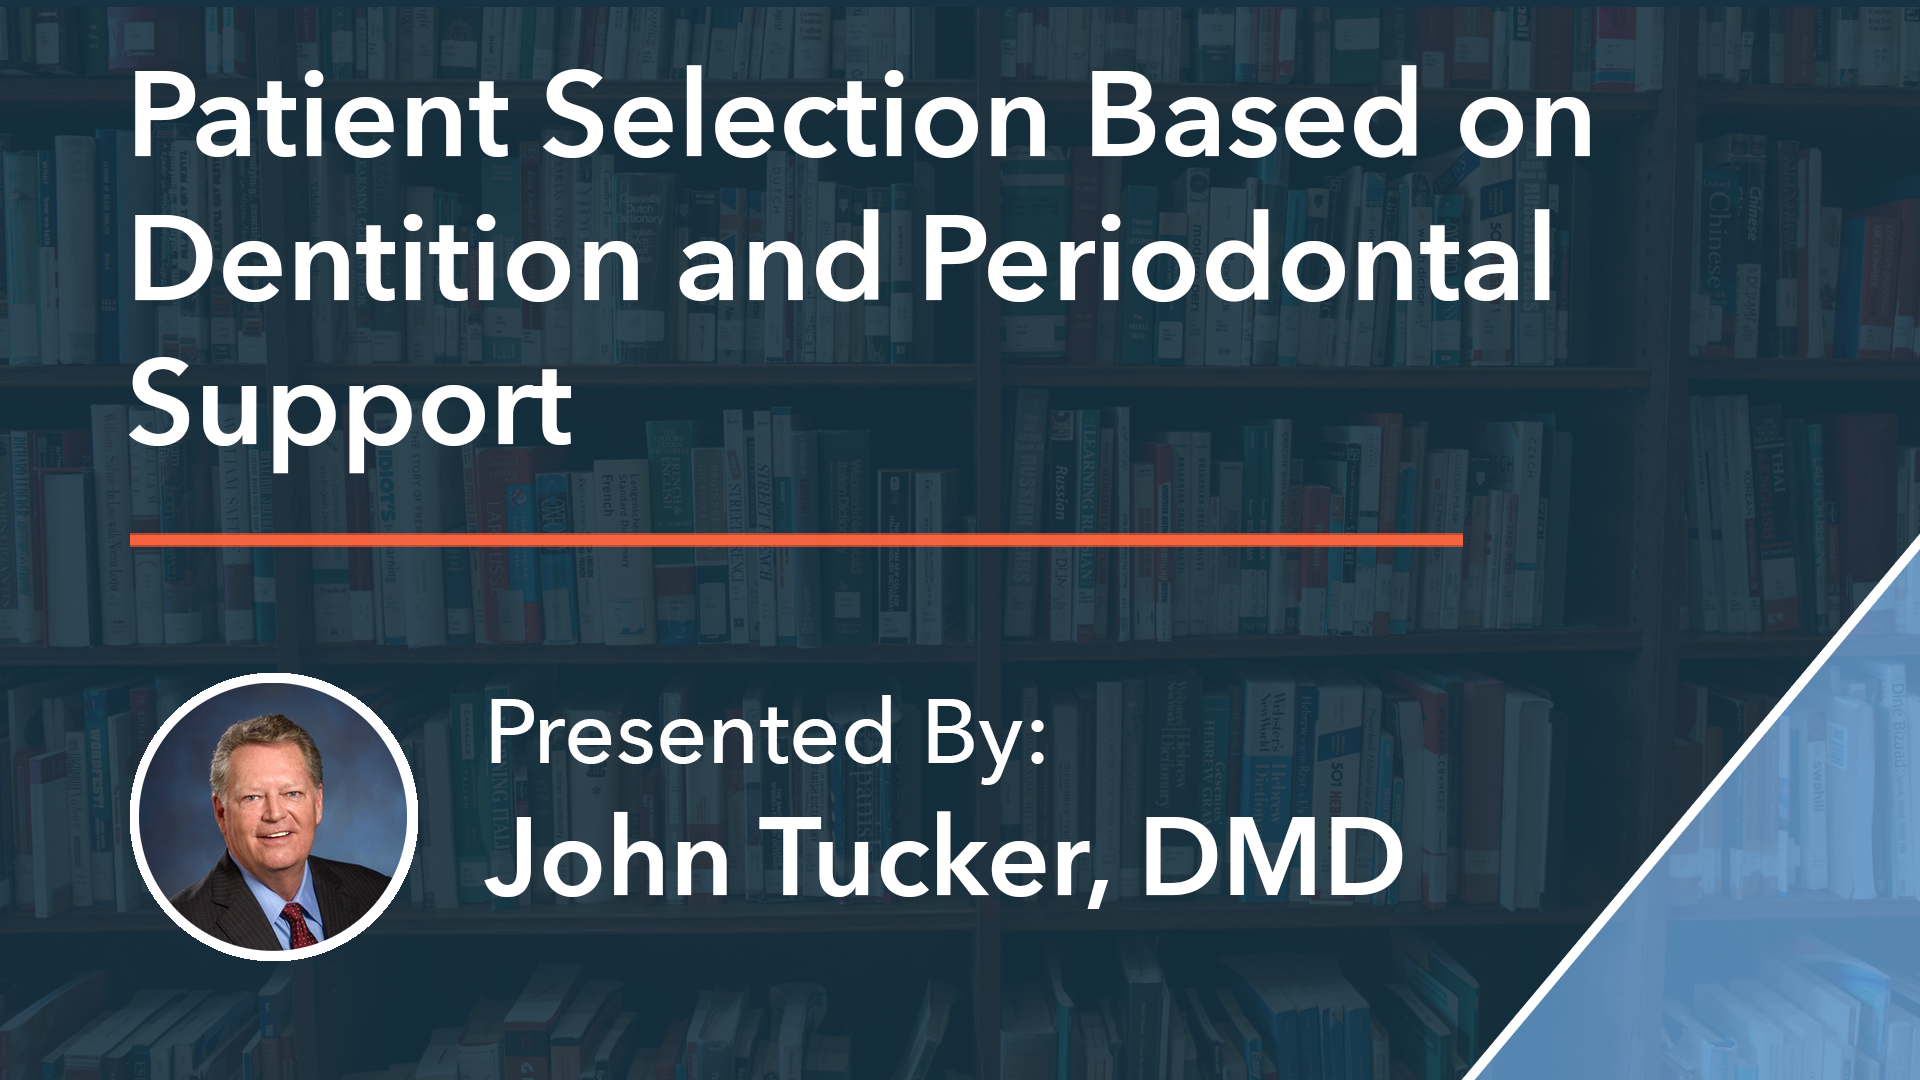 Patient Selection Based on Dentition and Periodontal Support Dr John Tucker